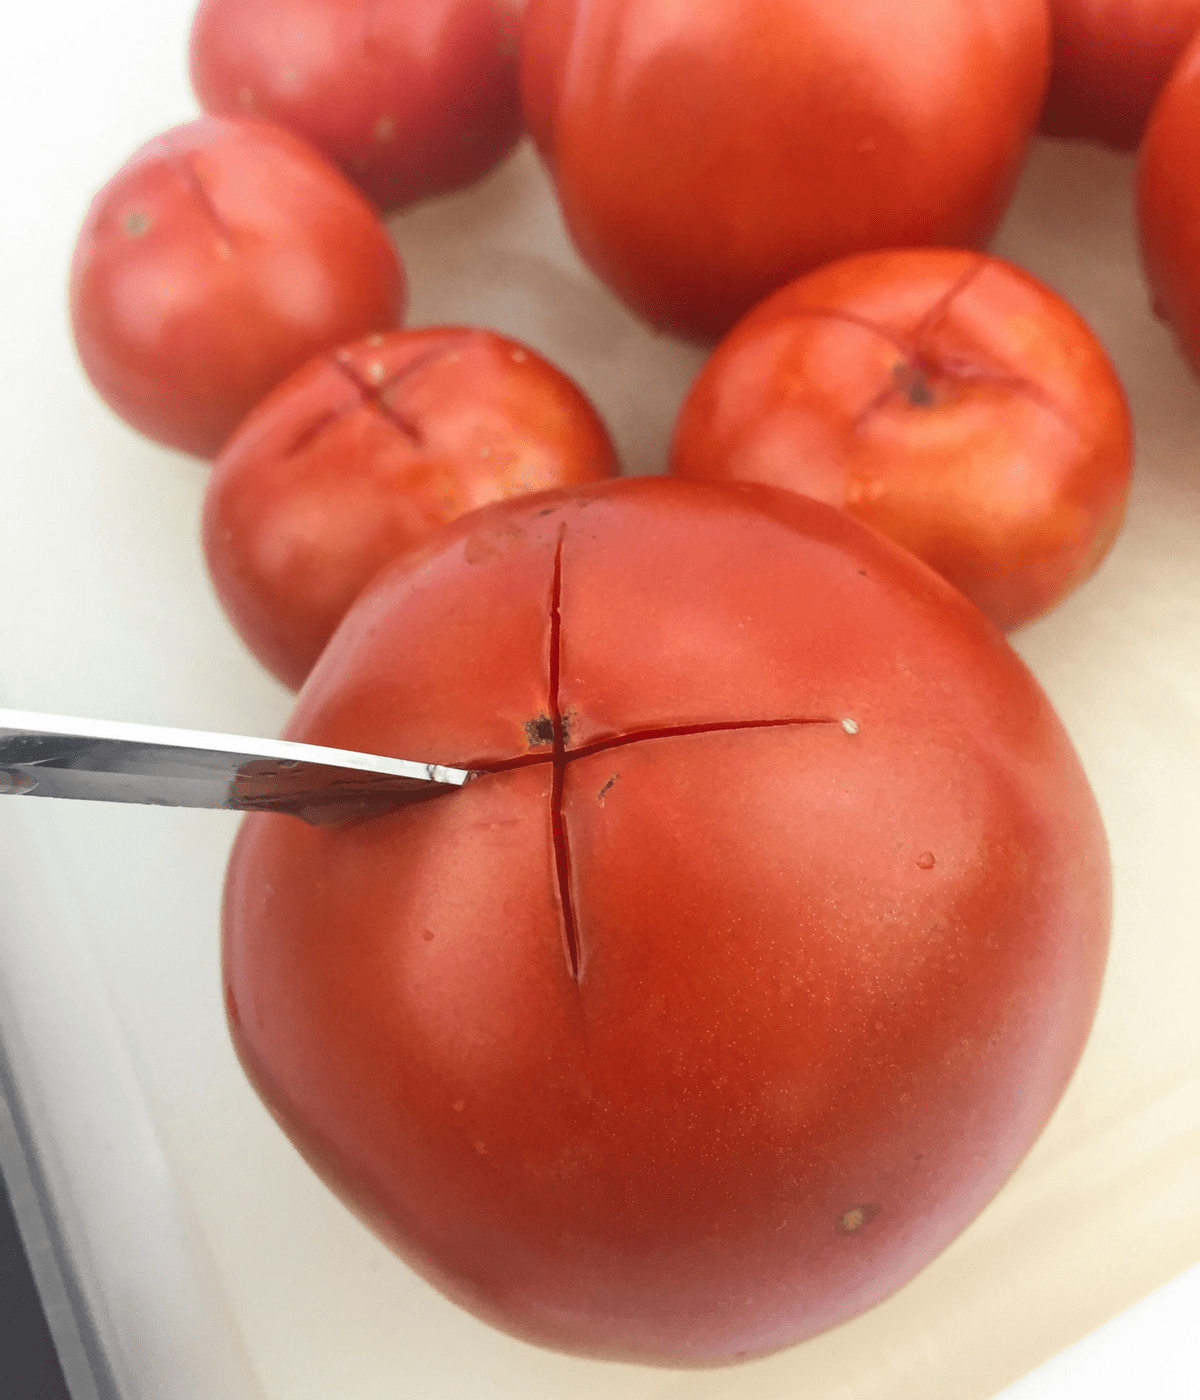 Learn how to make tomatoes safe to eat for lectin free, Paleo, and AIP diets through this peeling and de-seeding method.